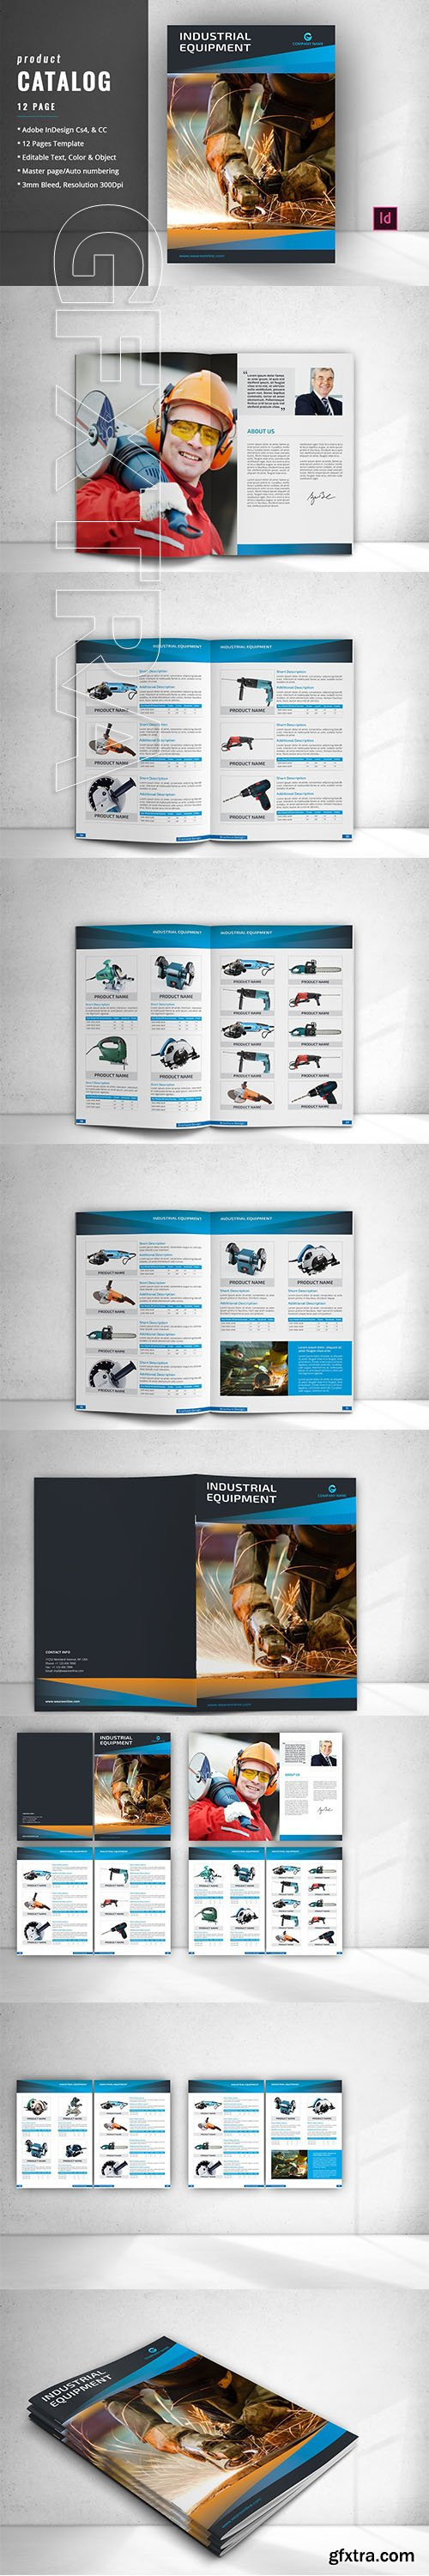 CreativeMarket - Product Catalog 3859350